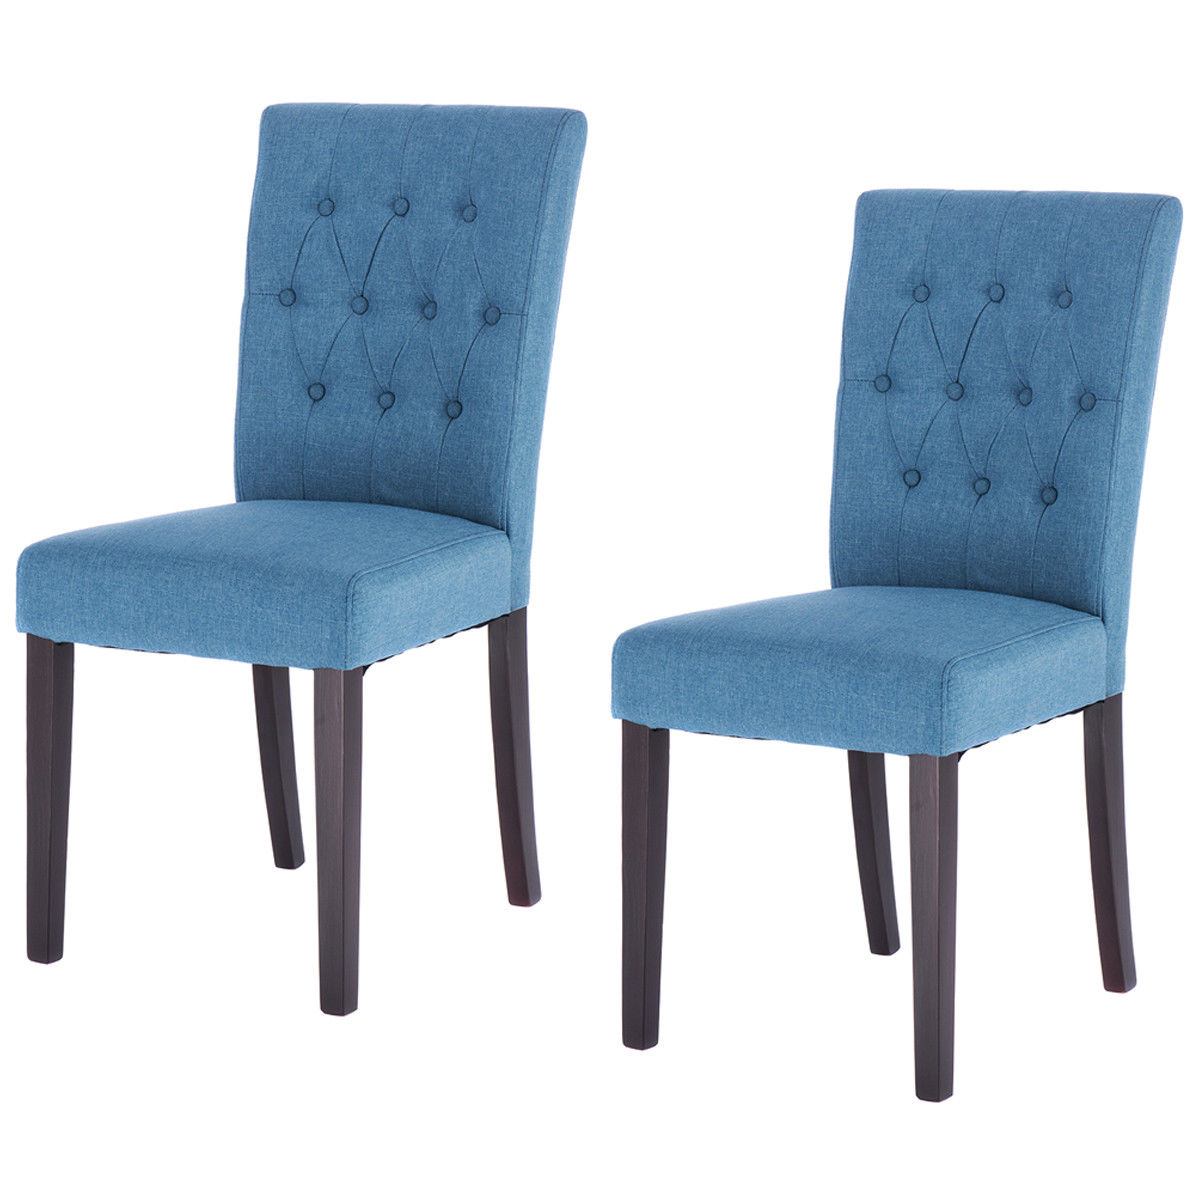 Accent Dining Chairs Giantex Set Of 2pcs Modern Fabric Dining Chair Armless